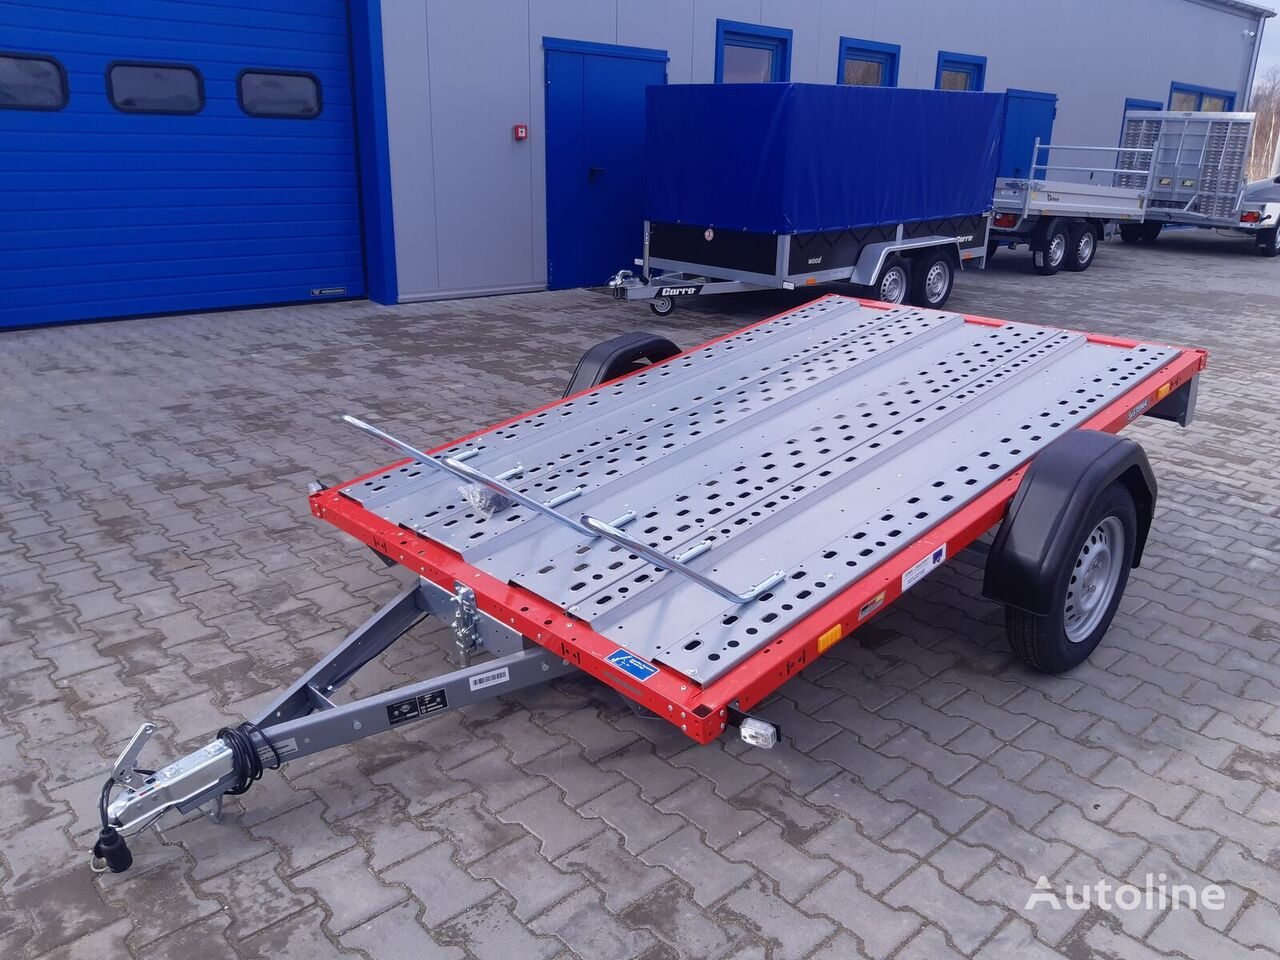 new STEMA STM 01 7.5-25-15.1 red 251x153 cm 3 motocykle motorcycle trailer